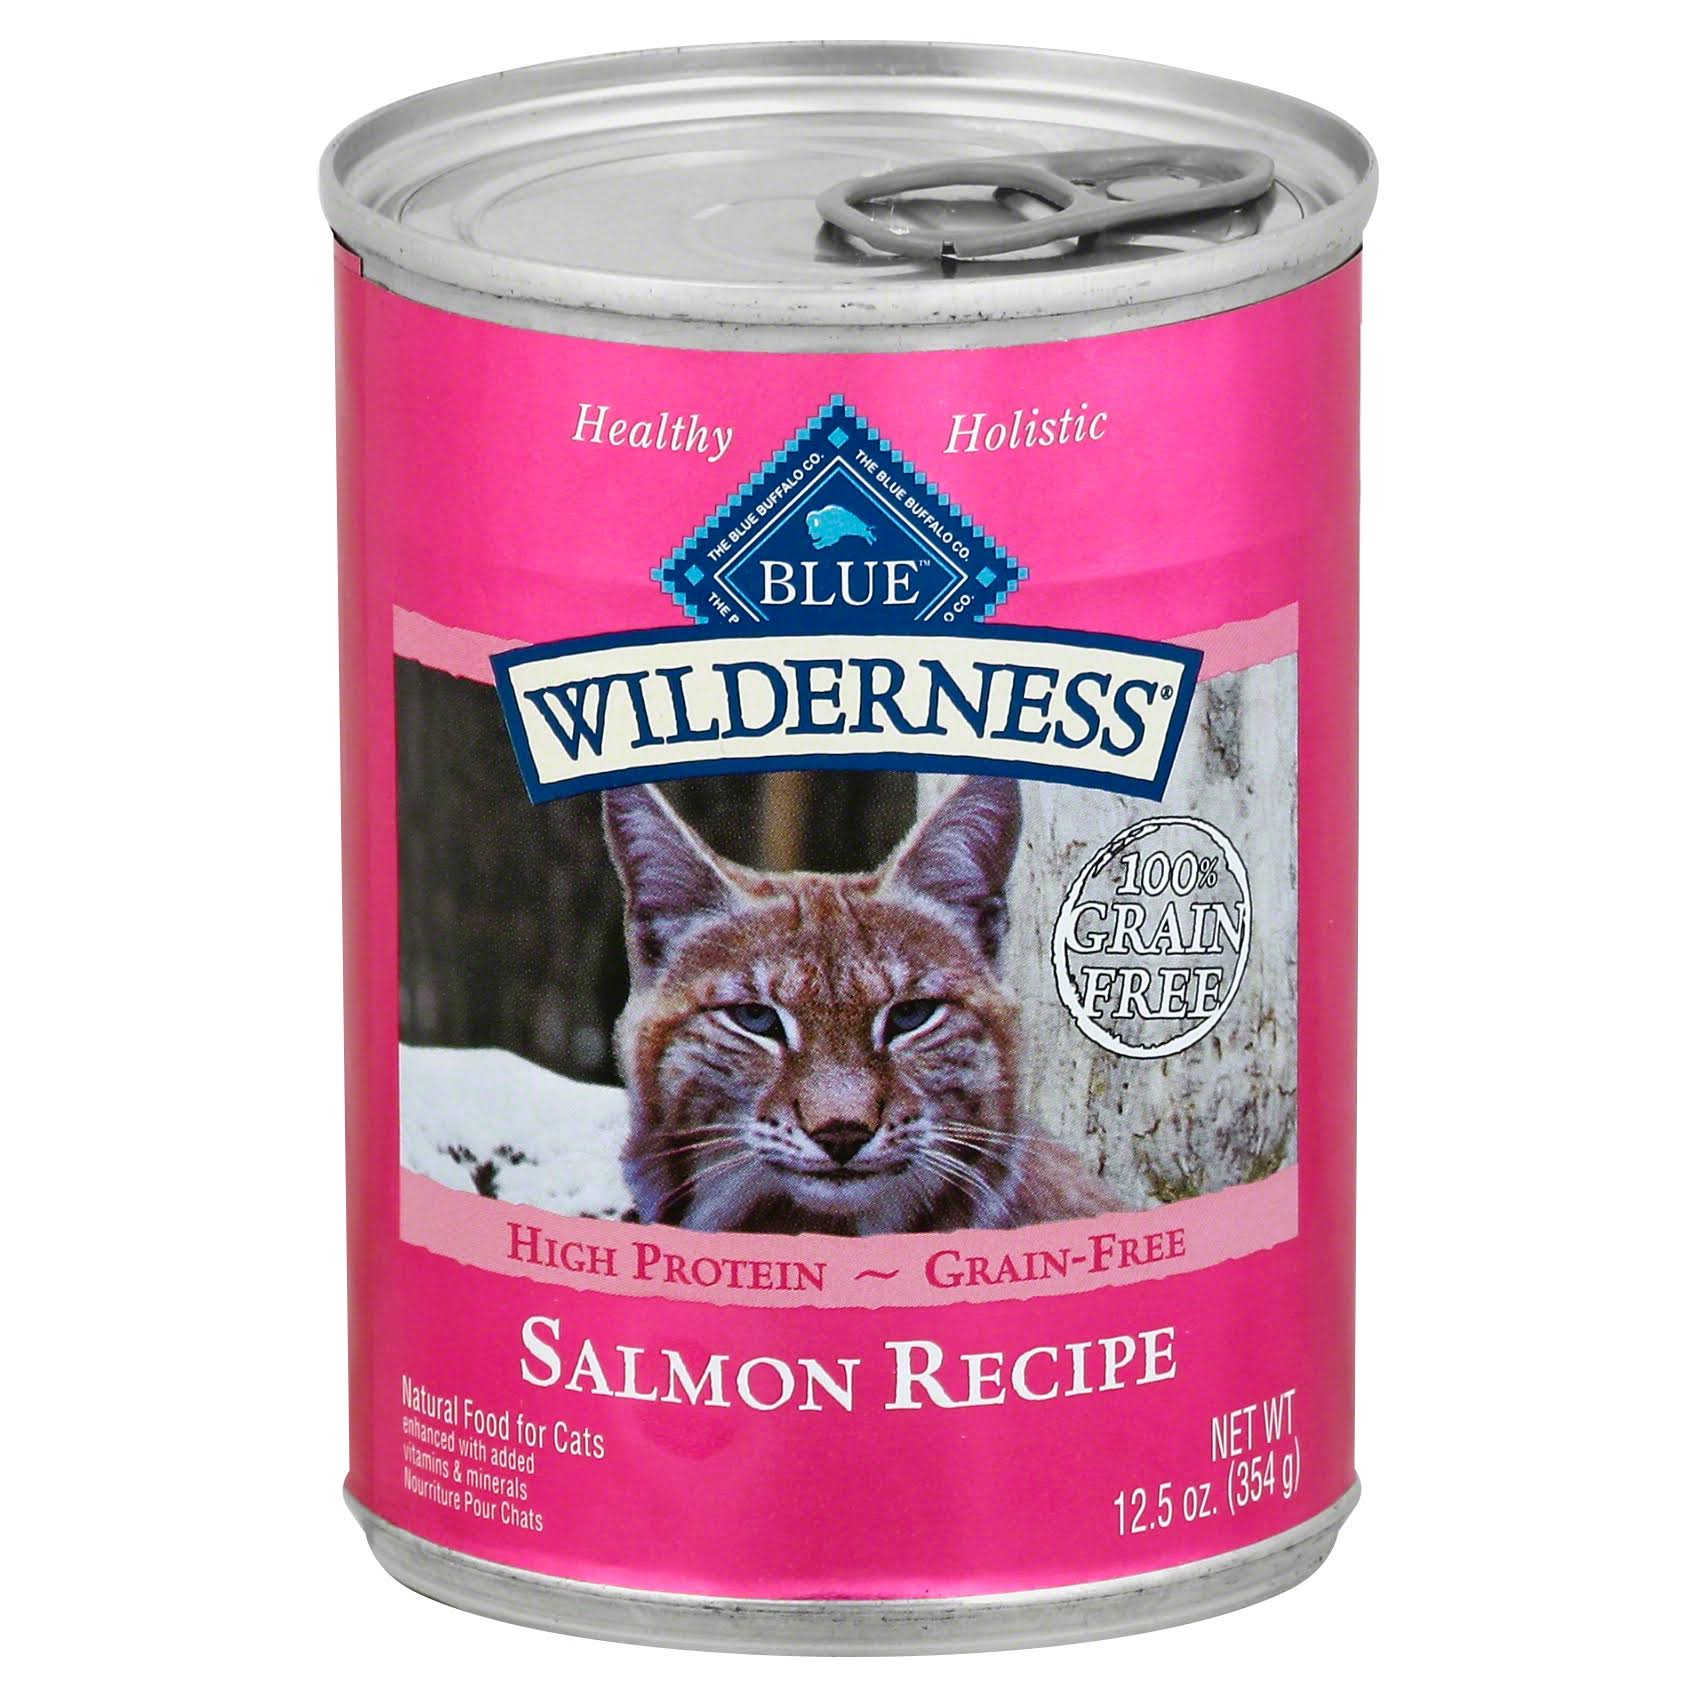 Blue Buffalo Wilderness Adult Cat Food - 12.5oz